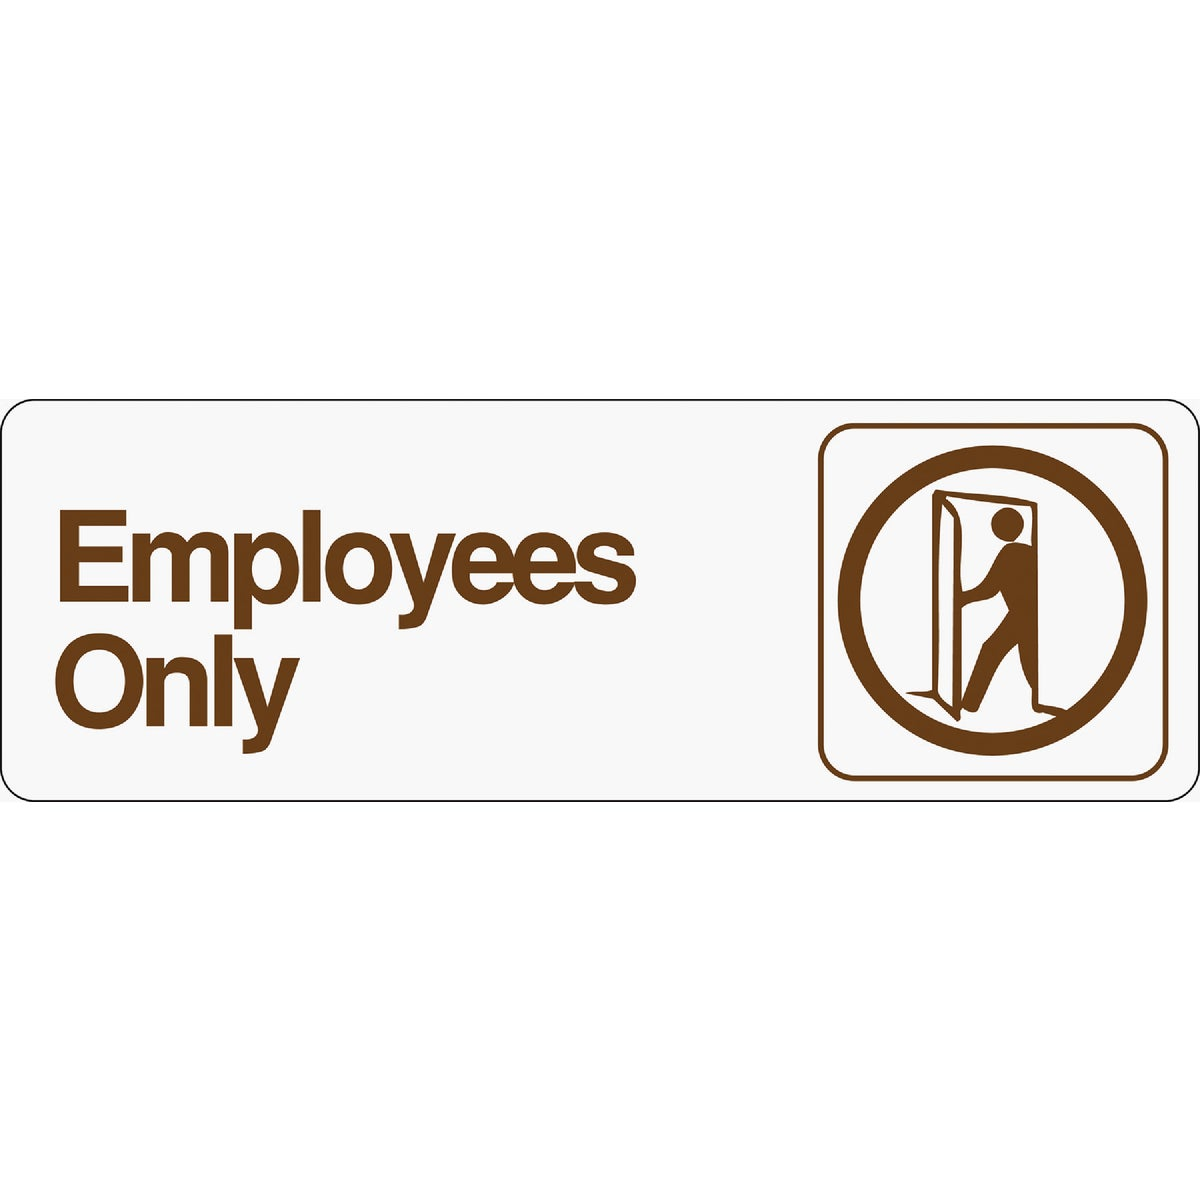 3X9 EMPLOYEES ONLY SIGN - D-2 by Hy Ko Prods Co